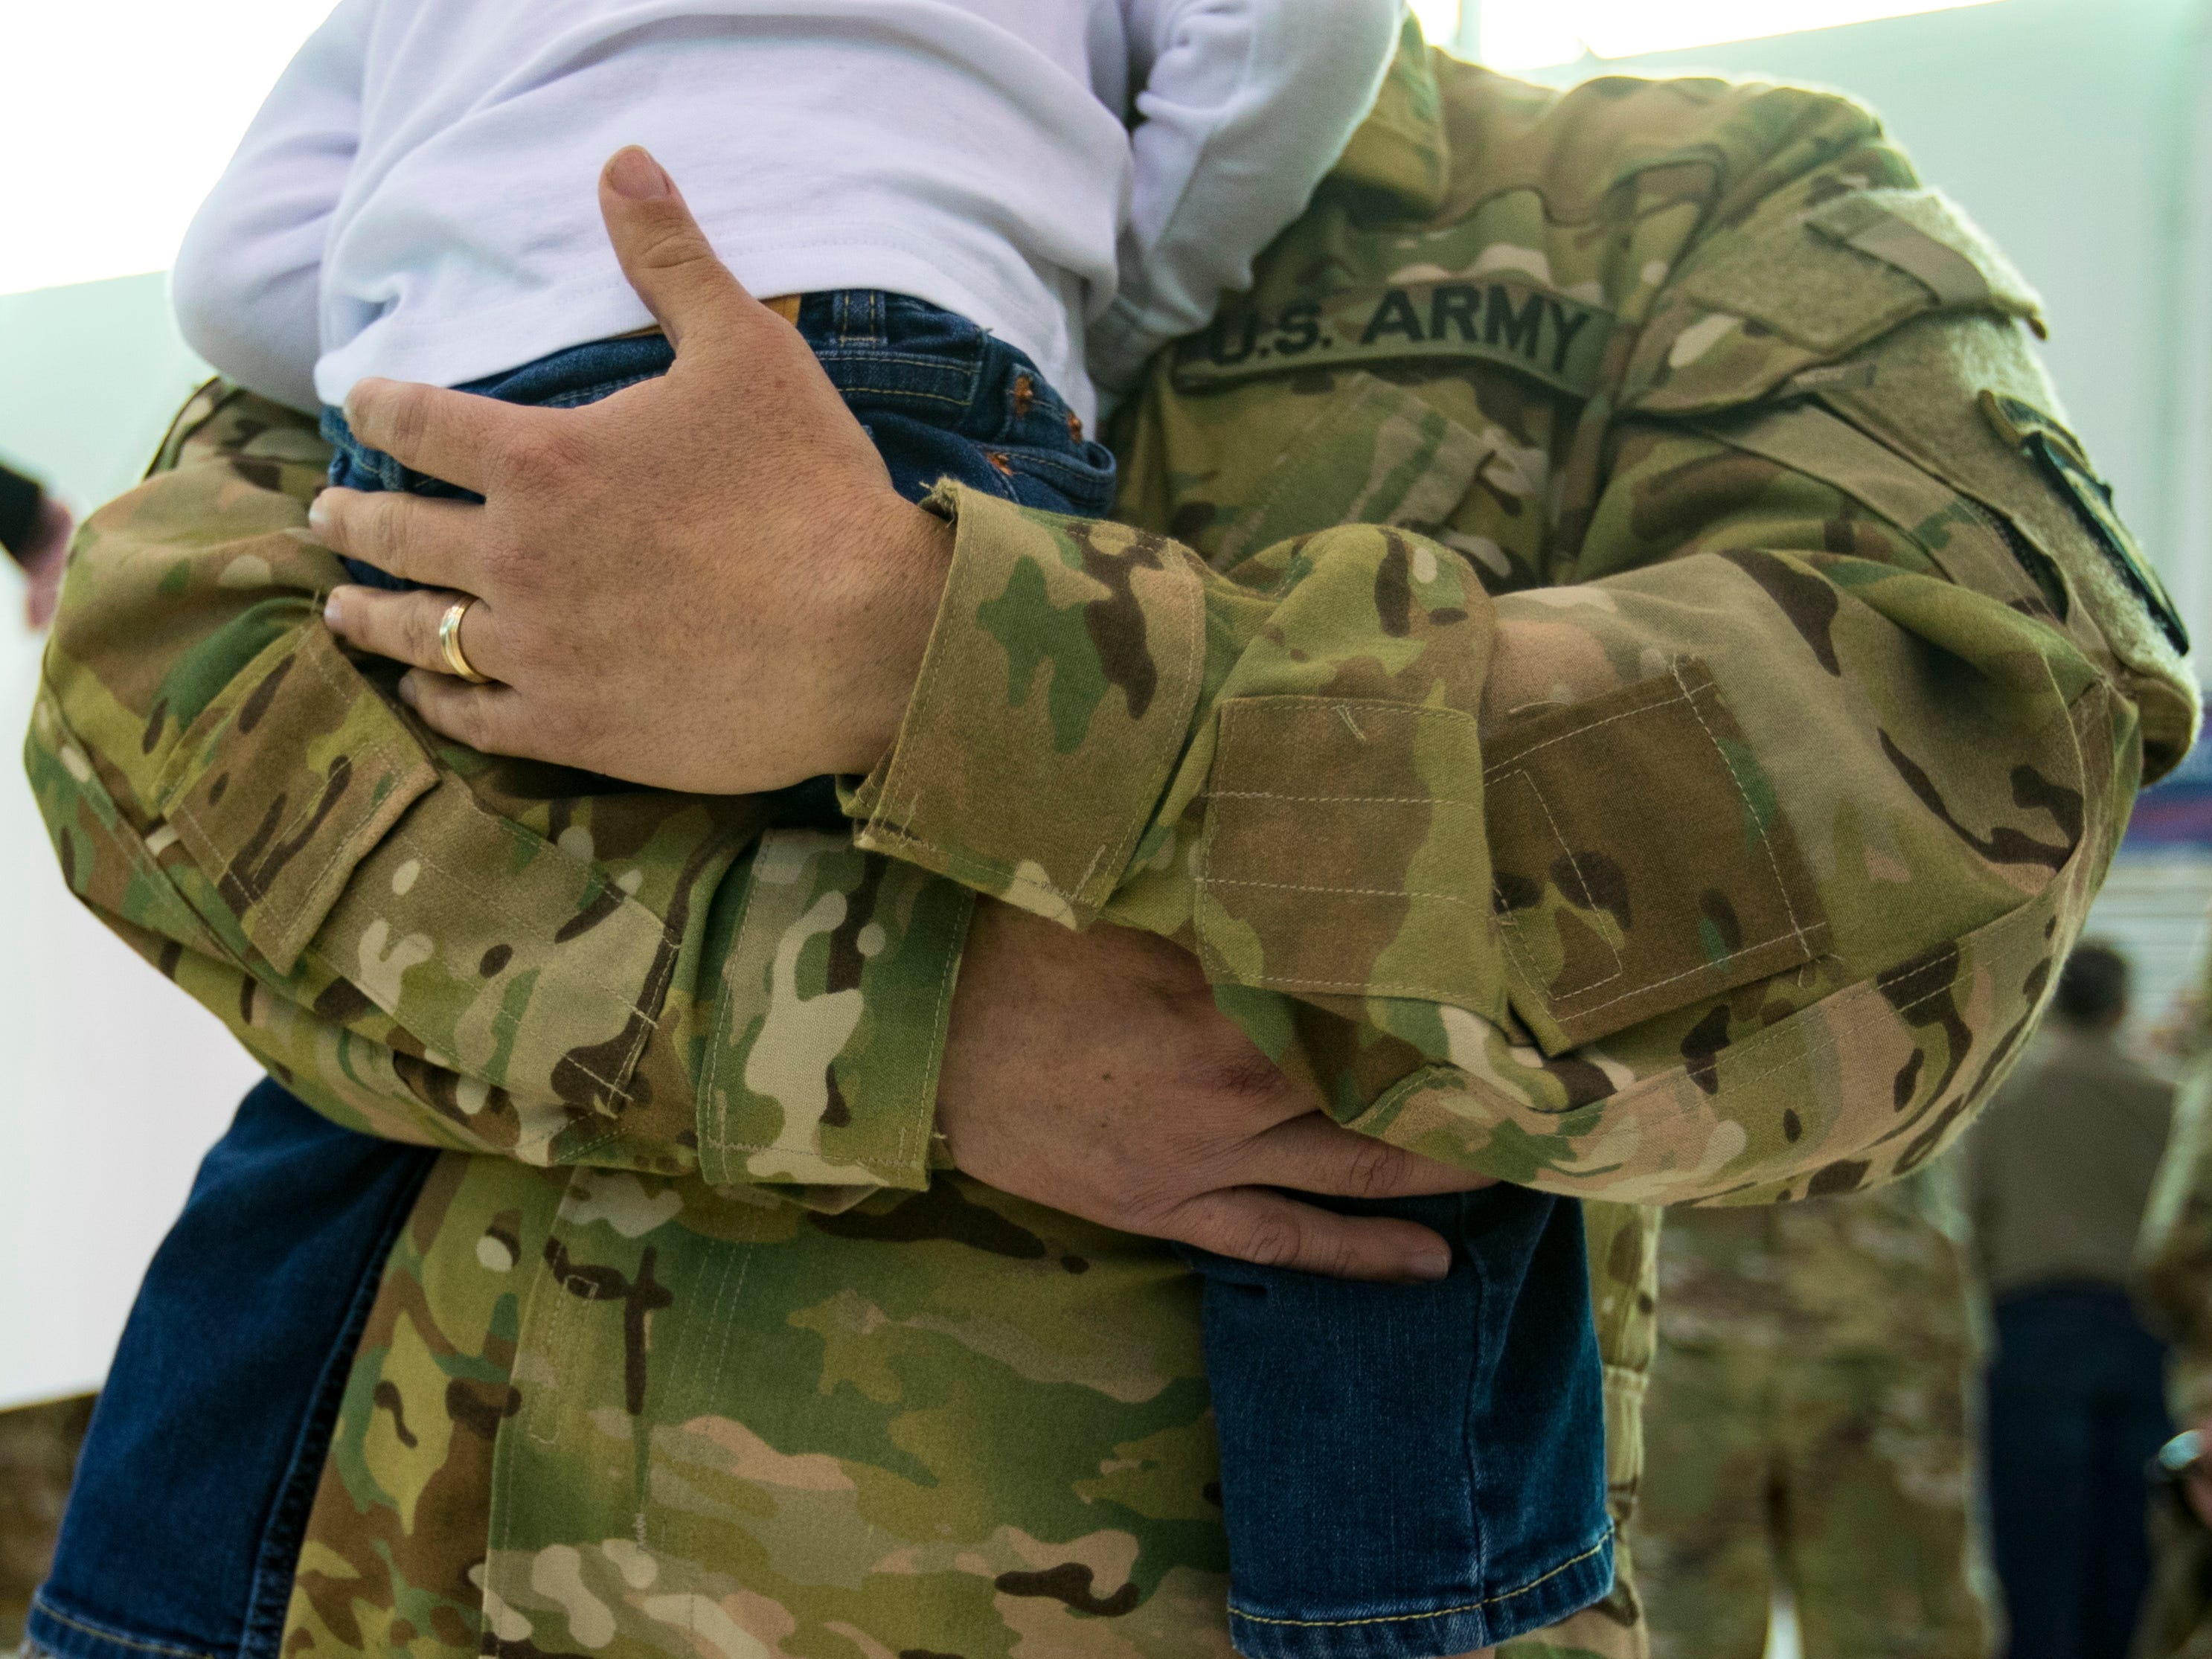 Gustavo Canales holds Raul Canales, 3, during a homecoming ceremony for members of the 101st Combat Aviation Brigade and 101st Sustainment Brigade at Fort Campbell in Clarksville on Thursday, Feb. 21, 2019. The soldiers were returning from a nine-month deployment to Afghanistan.